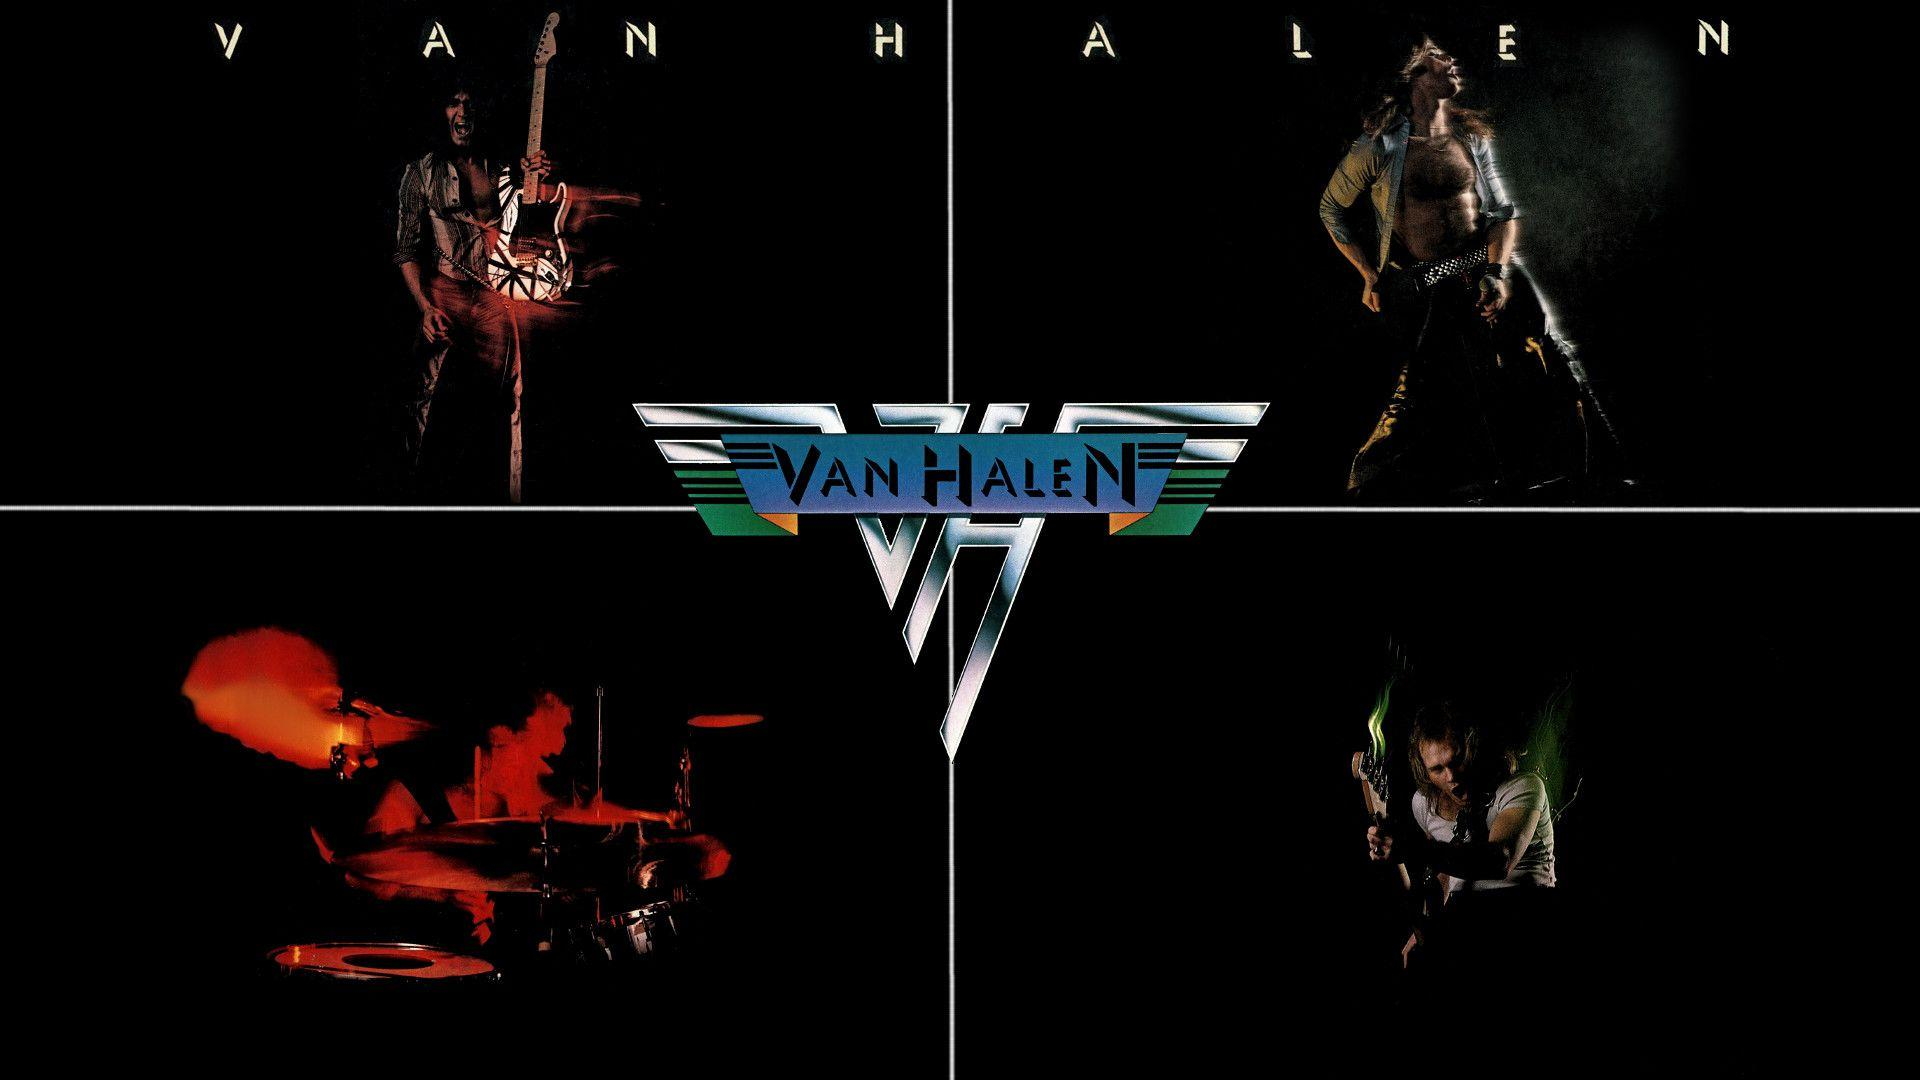 Van Halen Wallpapers Music Wallpapers 1024x768PX ~ Wallpapers Van